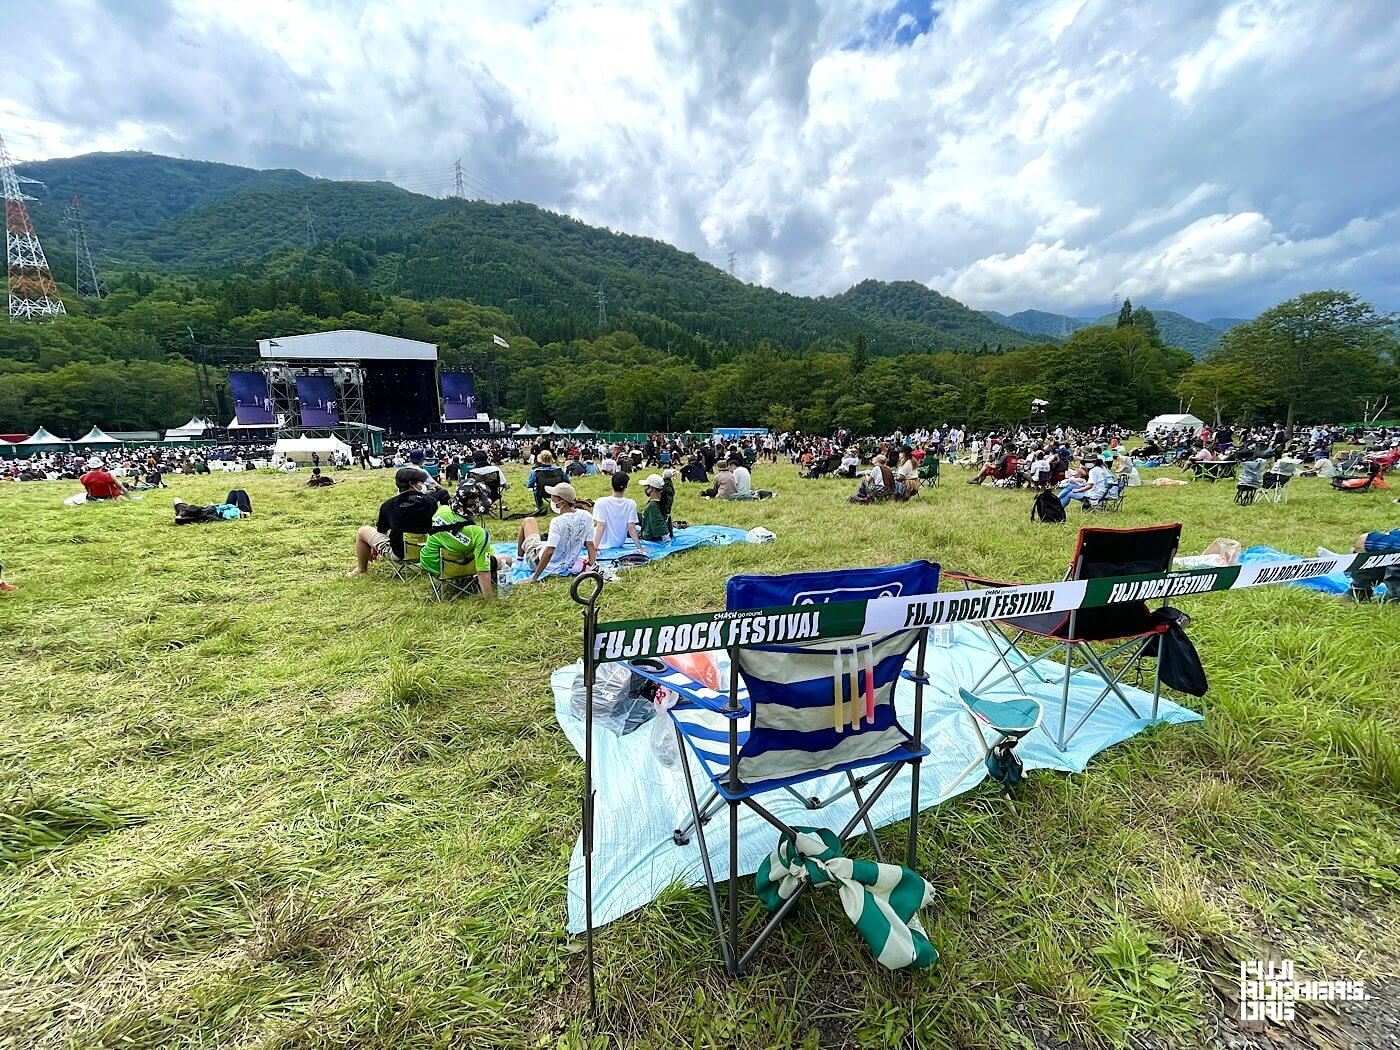 The Unattended Camping Chairs of Fuji Rock